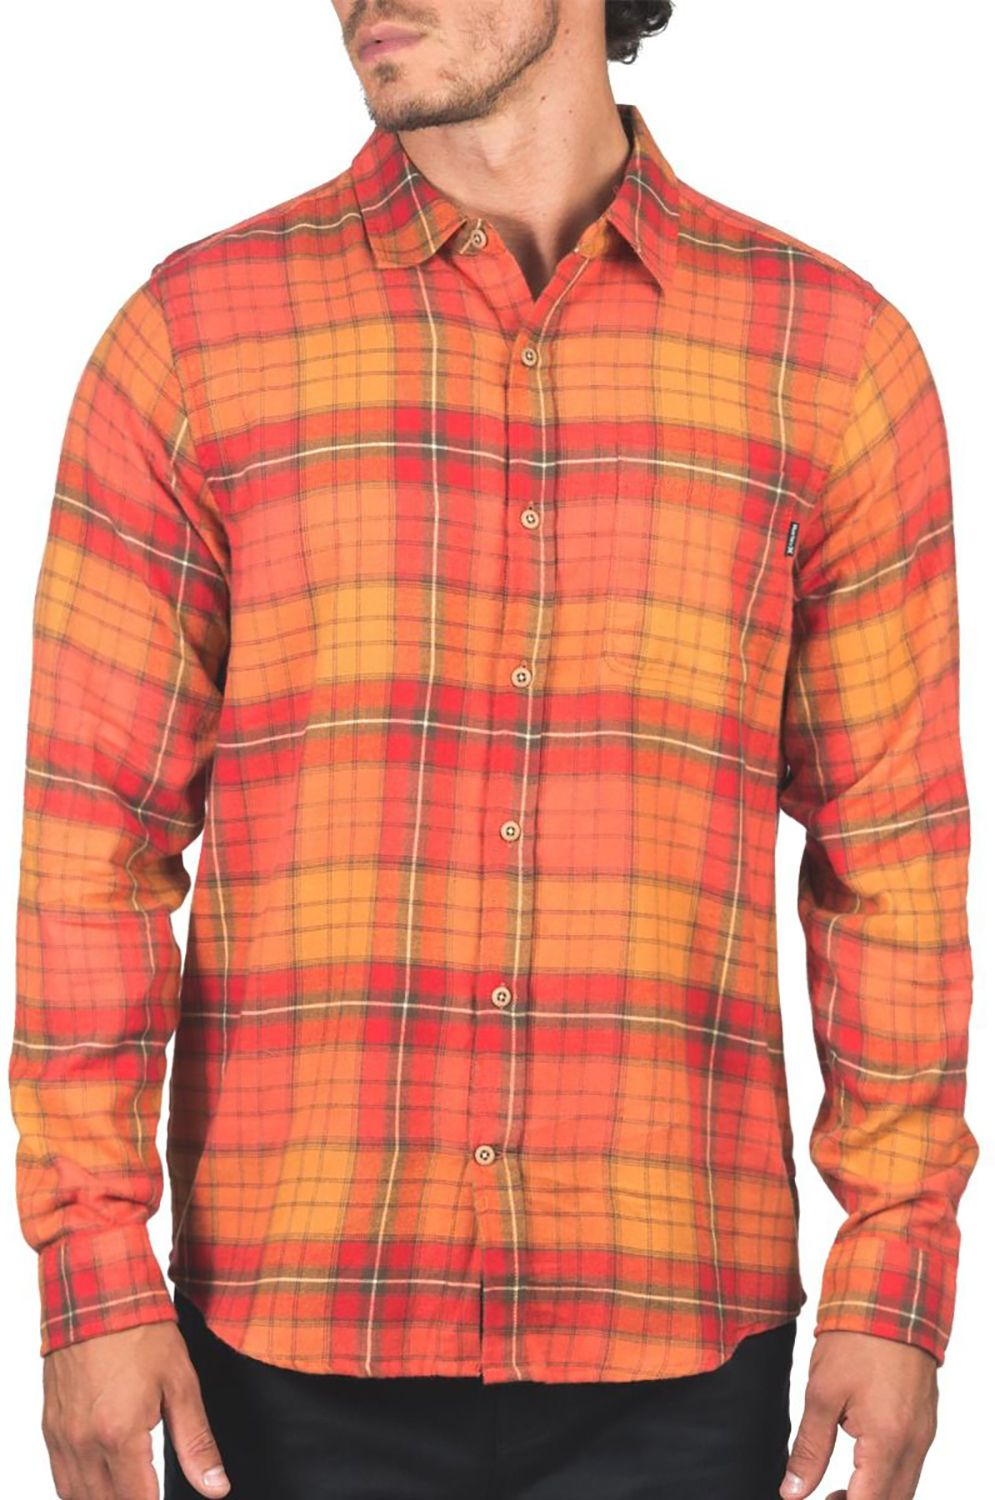 Hurley Shirt M PORTLAND FLANNEL LS Mantra Orange